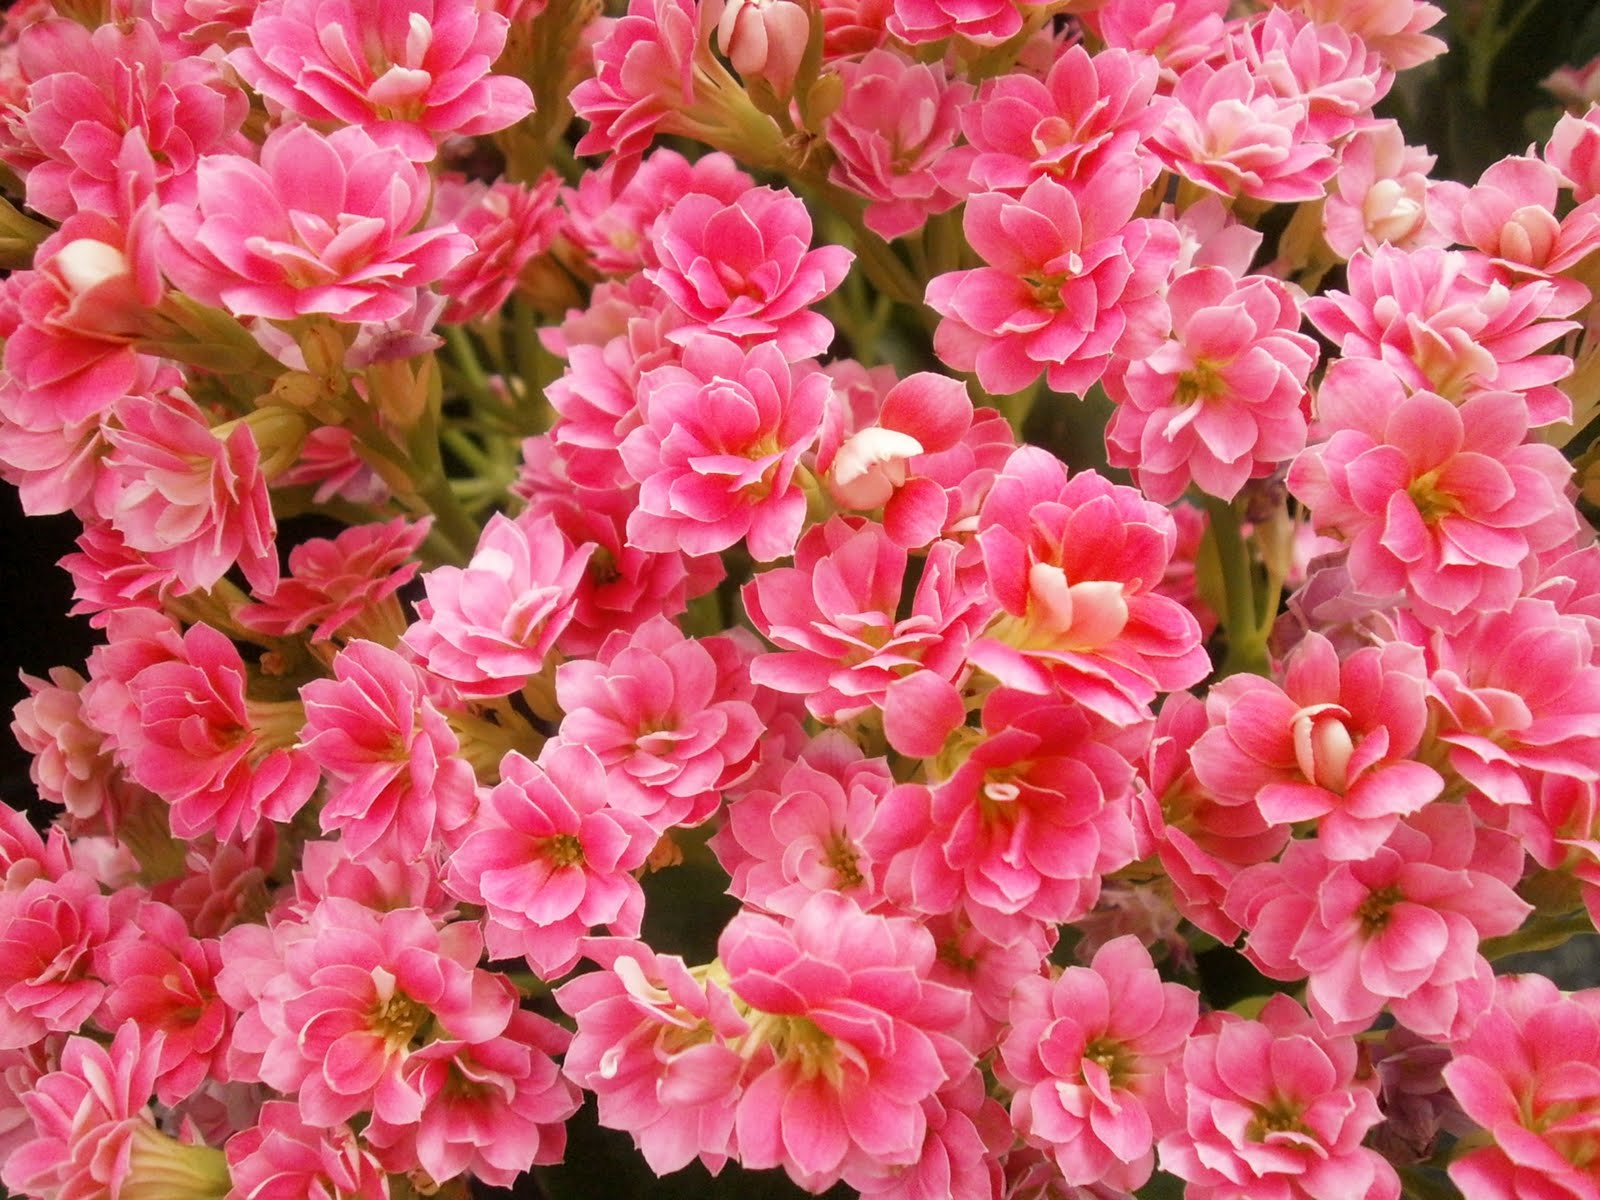 Plants are the Strangest People: Pretty pictures: Kalanchoe ... on kalanchoe paddle plant care, kalanchoe plant take care, kalanchoe care outdoors, plant kalanchoe luciae care, kalanchoe tubiflora plant care, kalanchoe daigremontiana plant care, kalanchoe tomentosa plant care, kalanchoe copper spoons succulent plant, kalanchoe plant care indoors, thyrsiflora kalanchoe plant care, kalanchoe varieties, kalanchoe blossfeldiana grow lights, kalanchoe medicinal plant uses, kalanchoe plant types, orange kalanchoe plant care, kalanchoe humilis care for a plant, kalanchoe succulent plant care, kalanchoe pearl bells plant, kalanchoe plant poisonous,